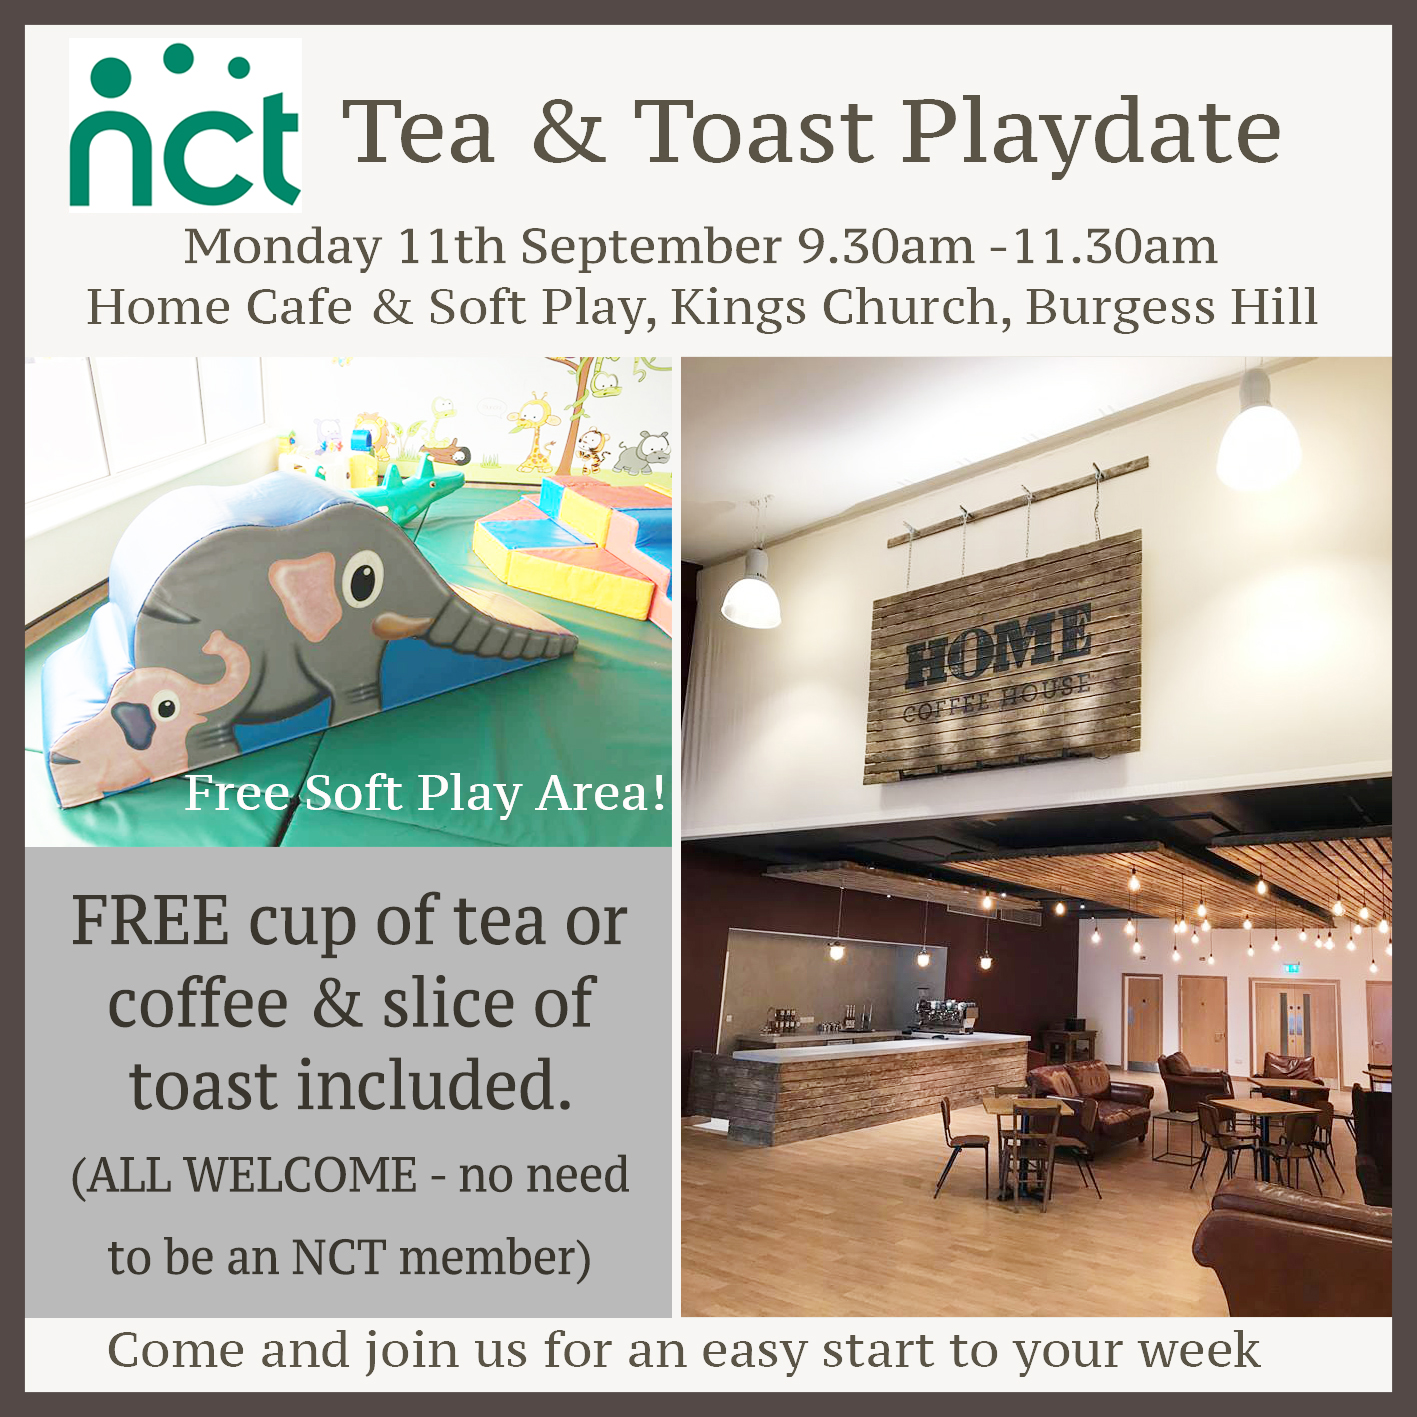 Flyer for the tea and toast playdate